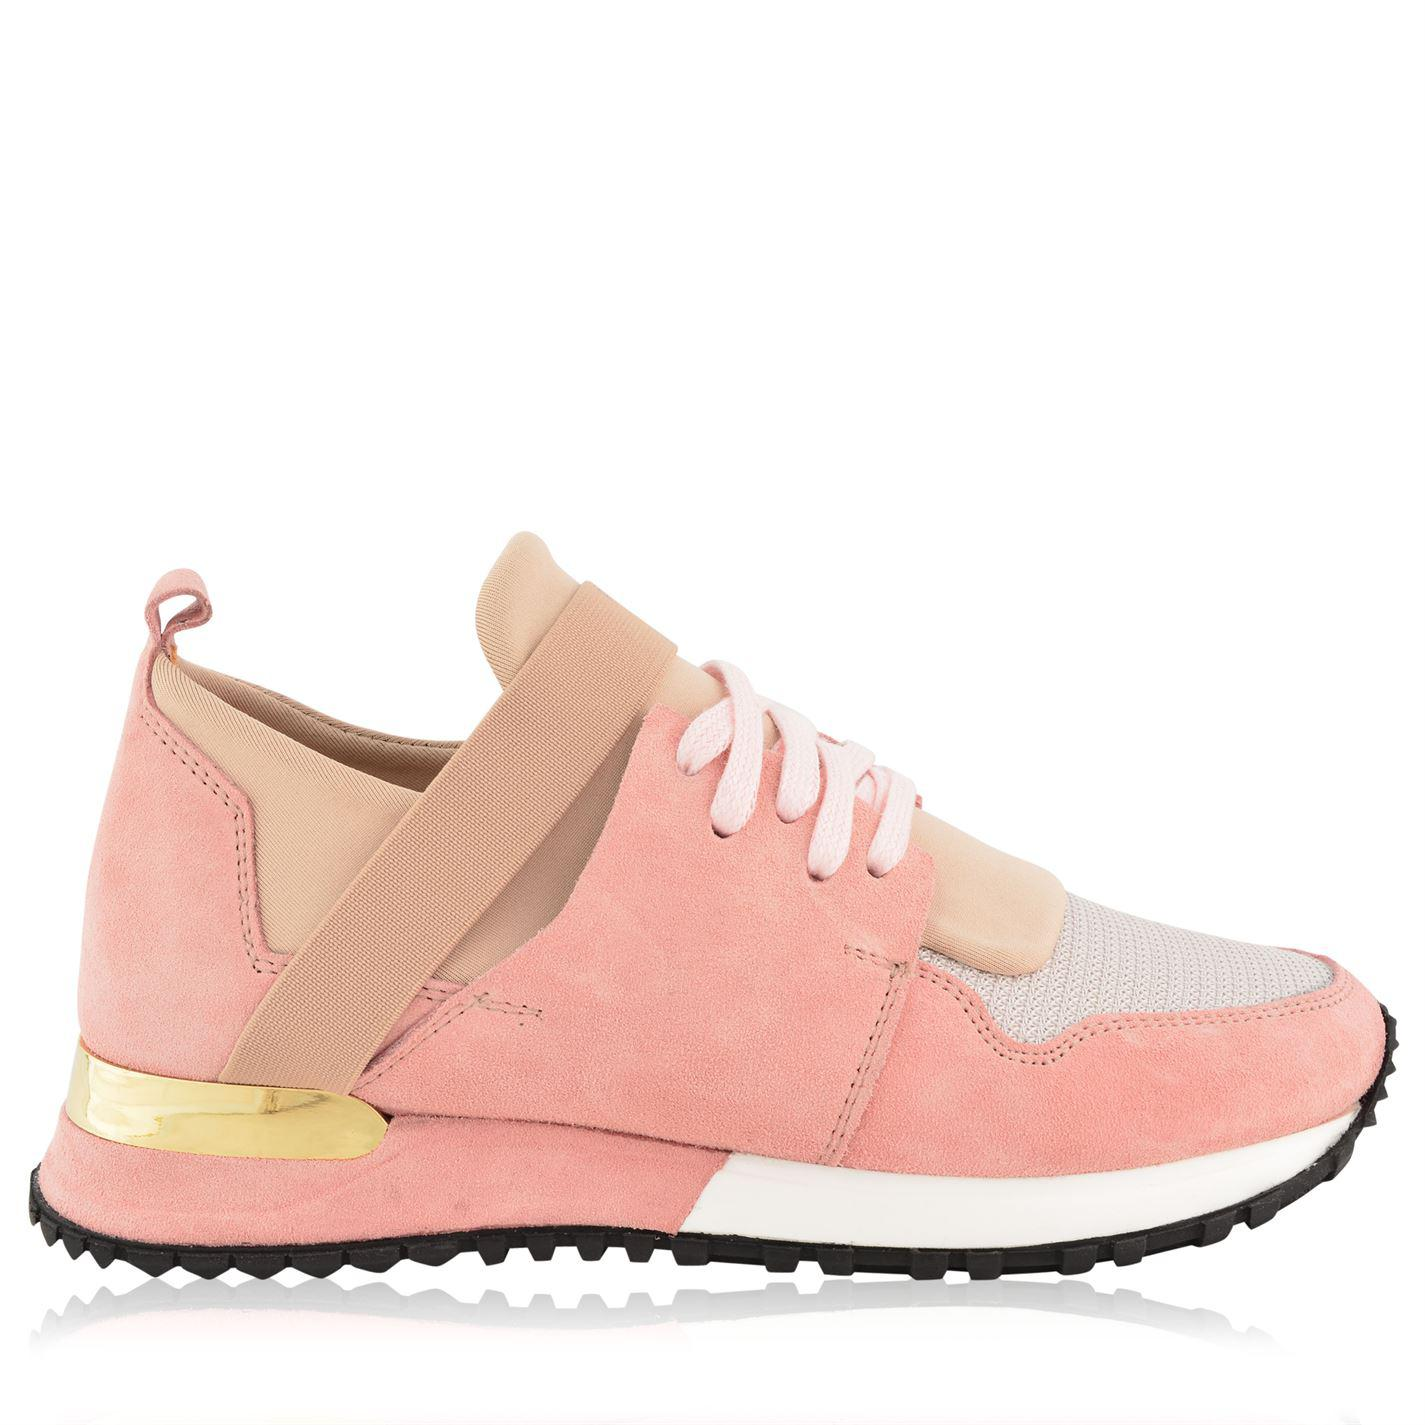 f7654427f4d8 Lyst - Mallet Low Top Elast Trainers in Pink